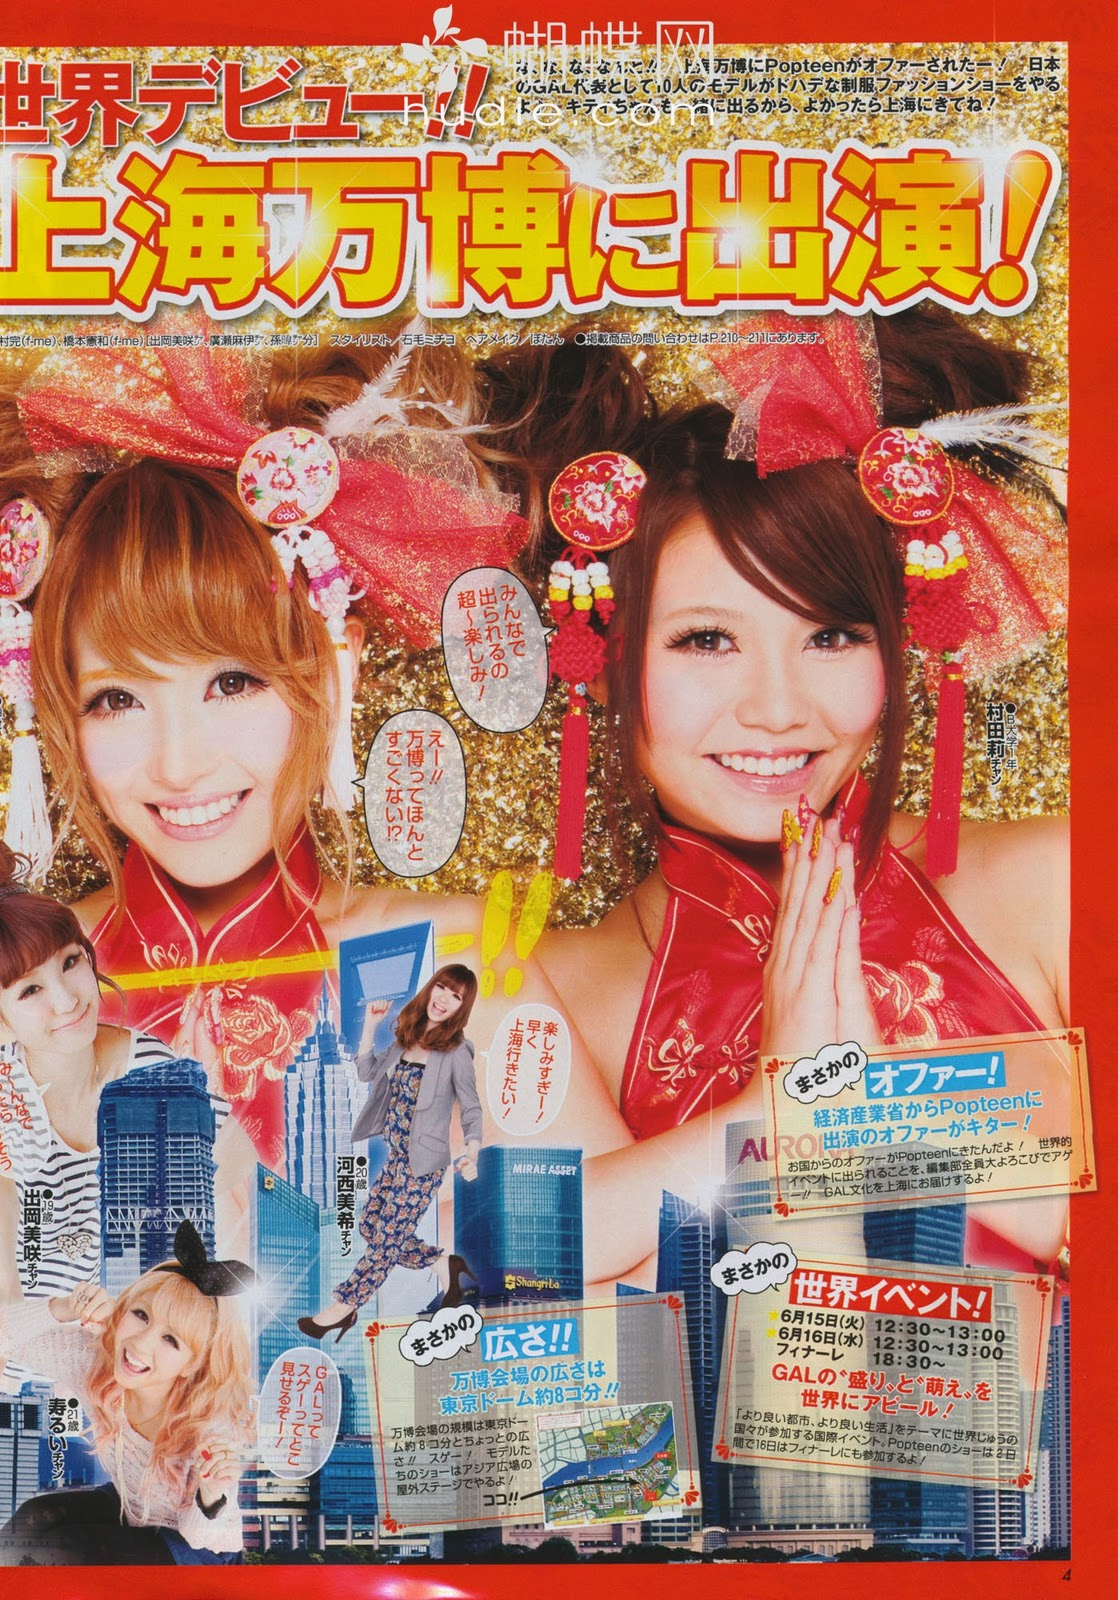 ekiBlog.com: Popteen July issue 2010 *pic heavy*